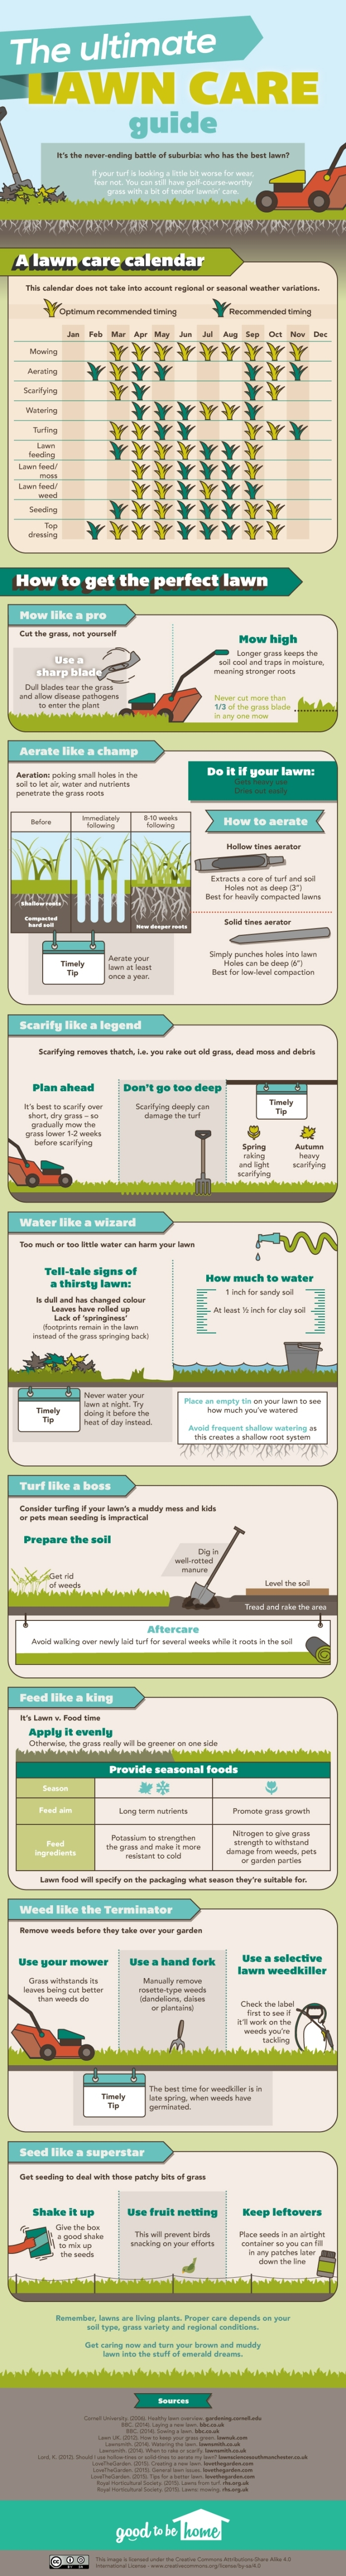 Ultimate Lawncare Guide